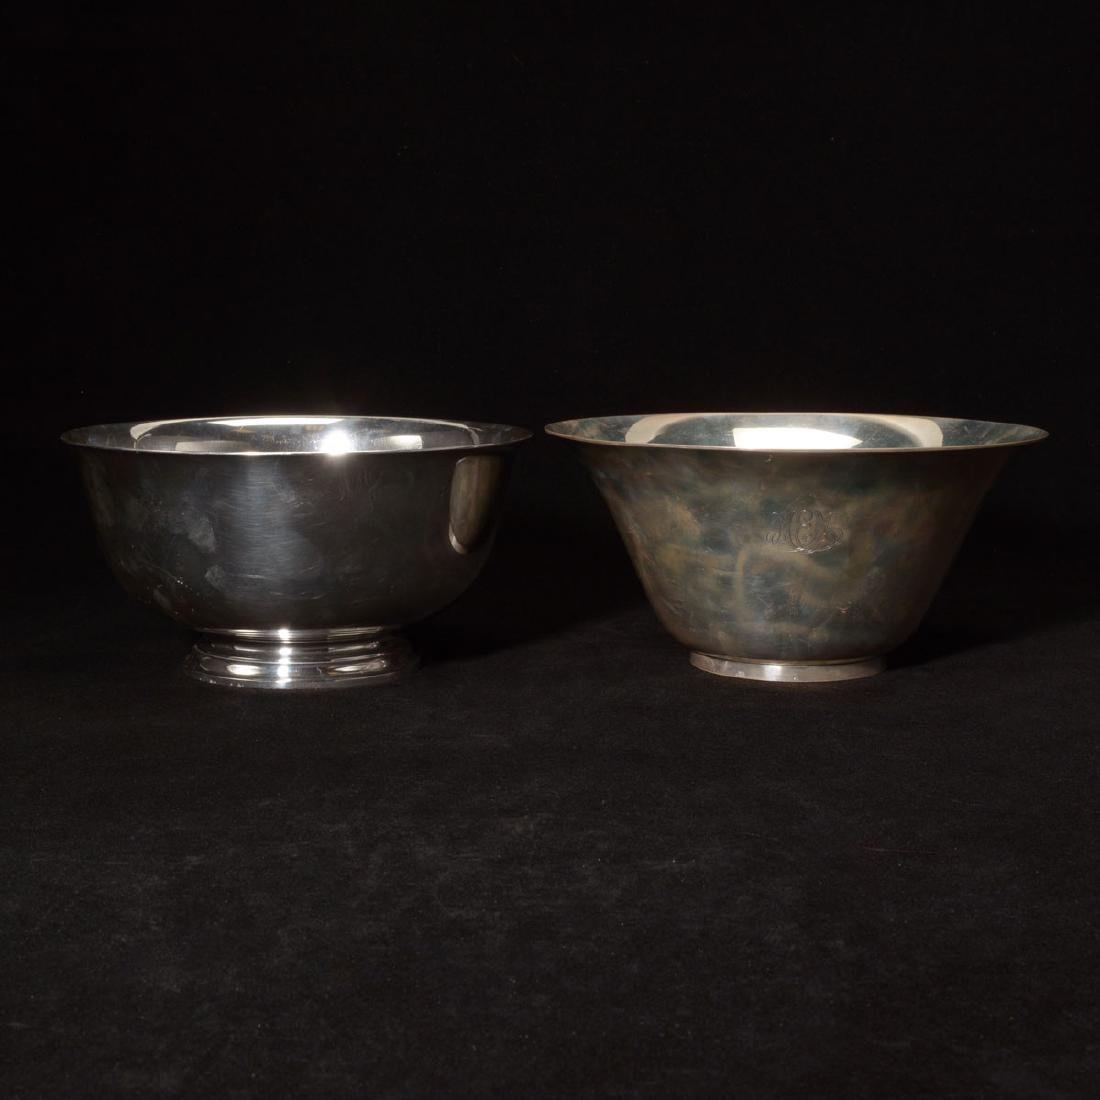 Two Tiffany & Co. Sterling Silver Bowls